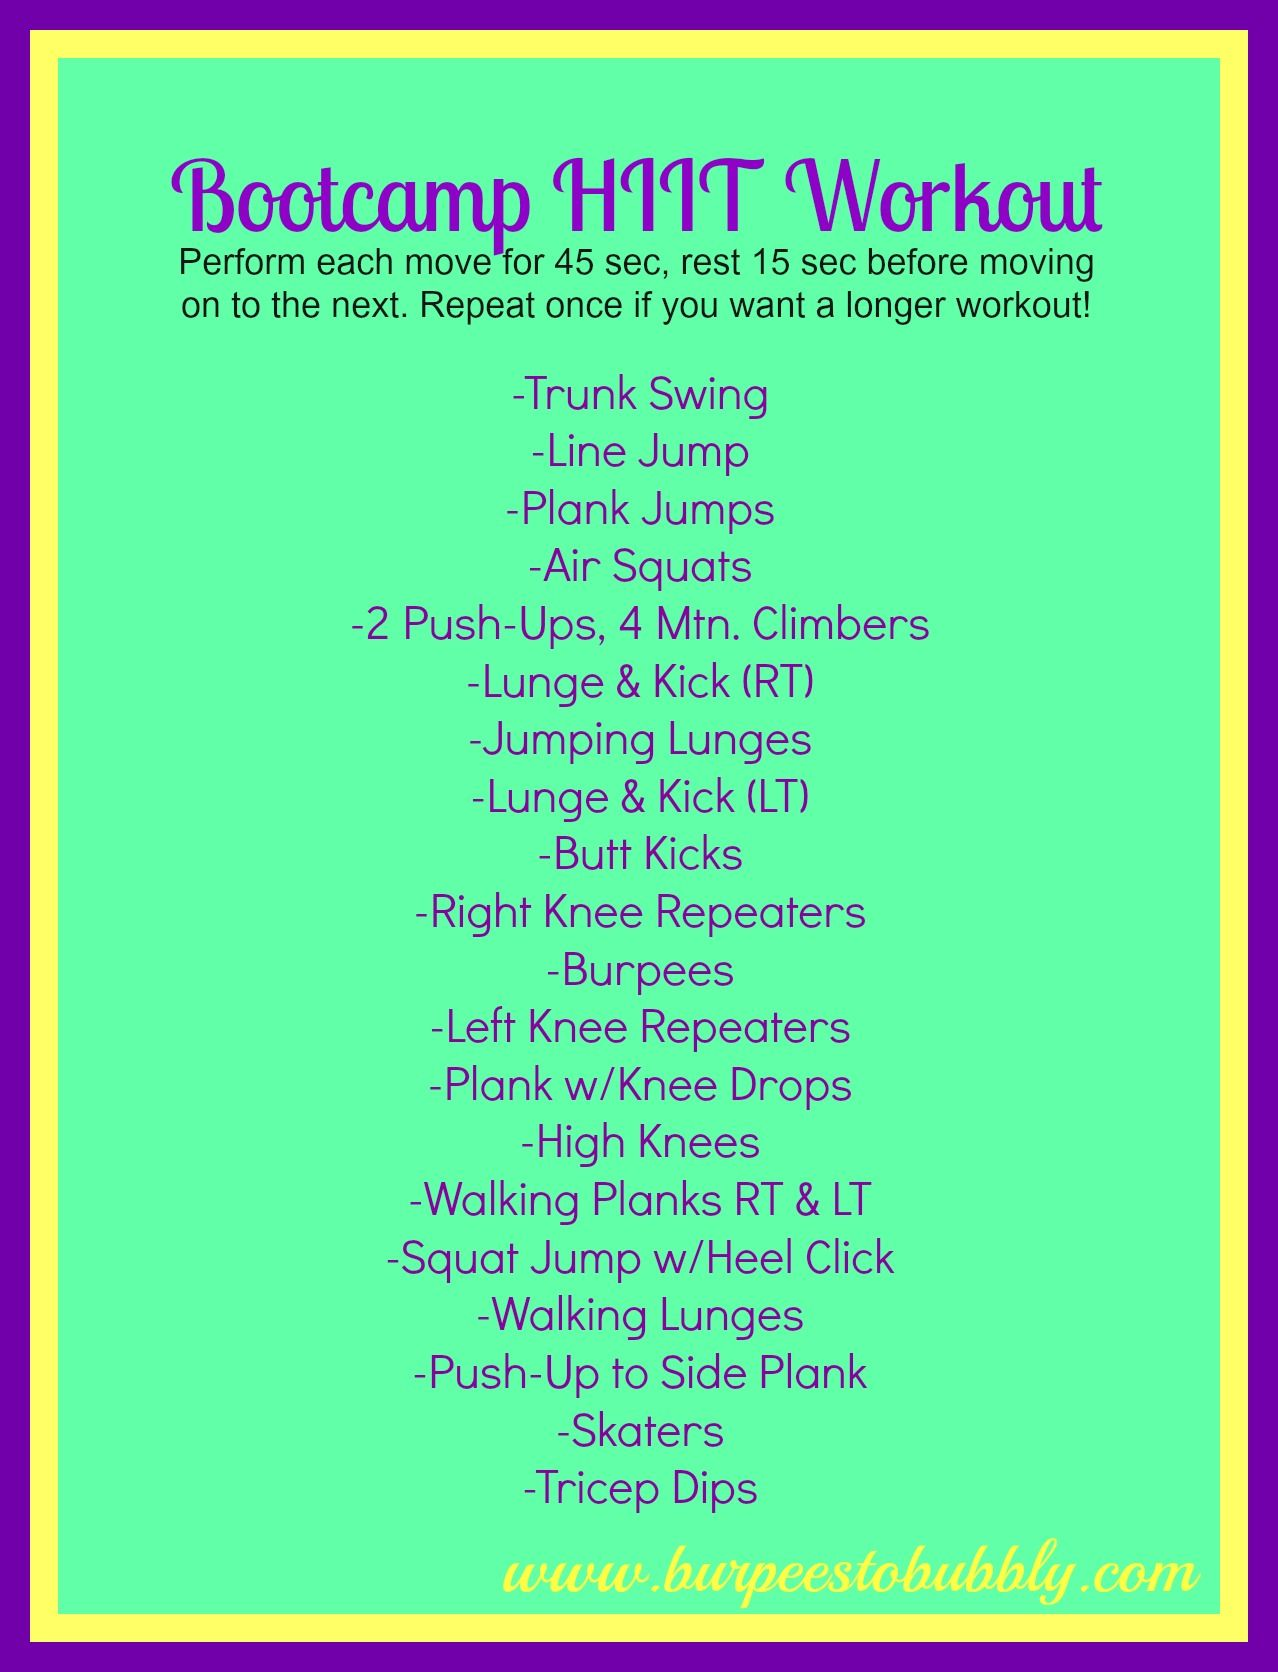 20 minute bootcamp hiit workout | fitness :) | workout, hiit, 300